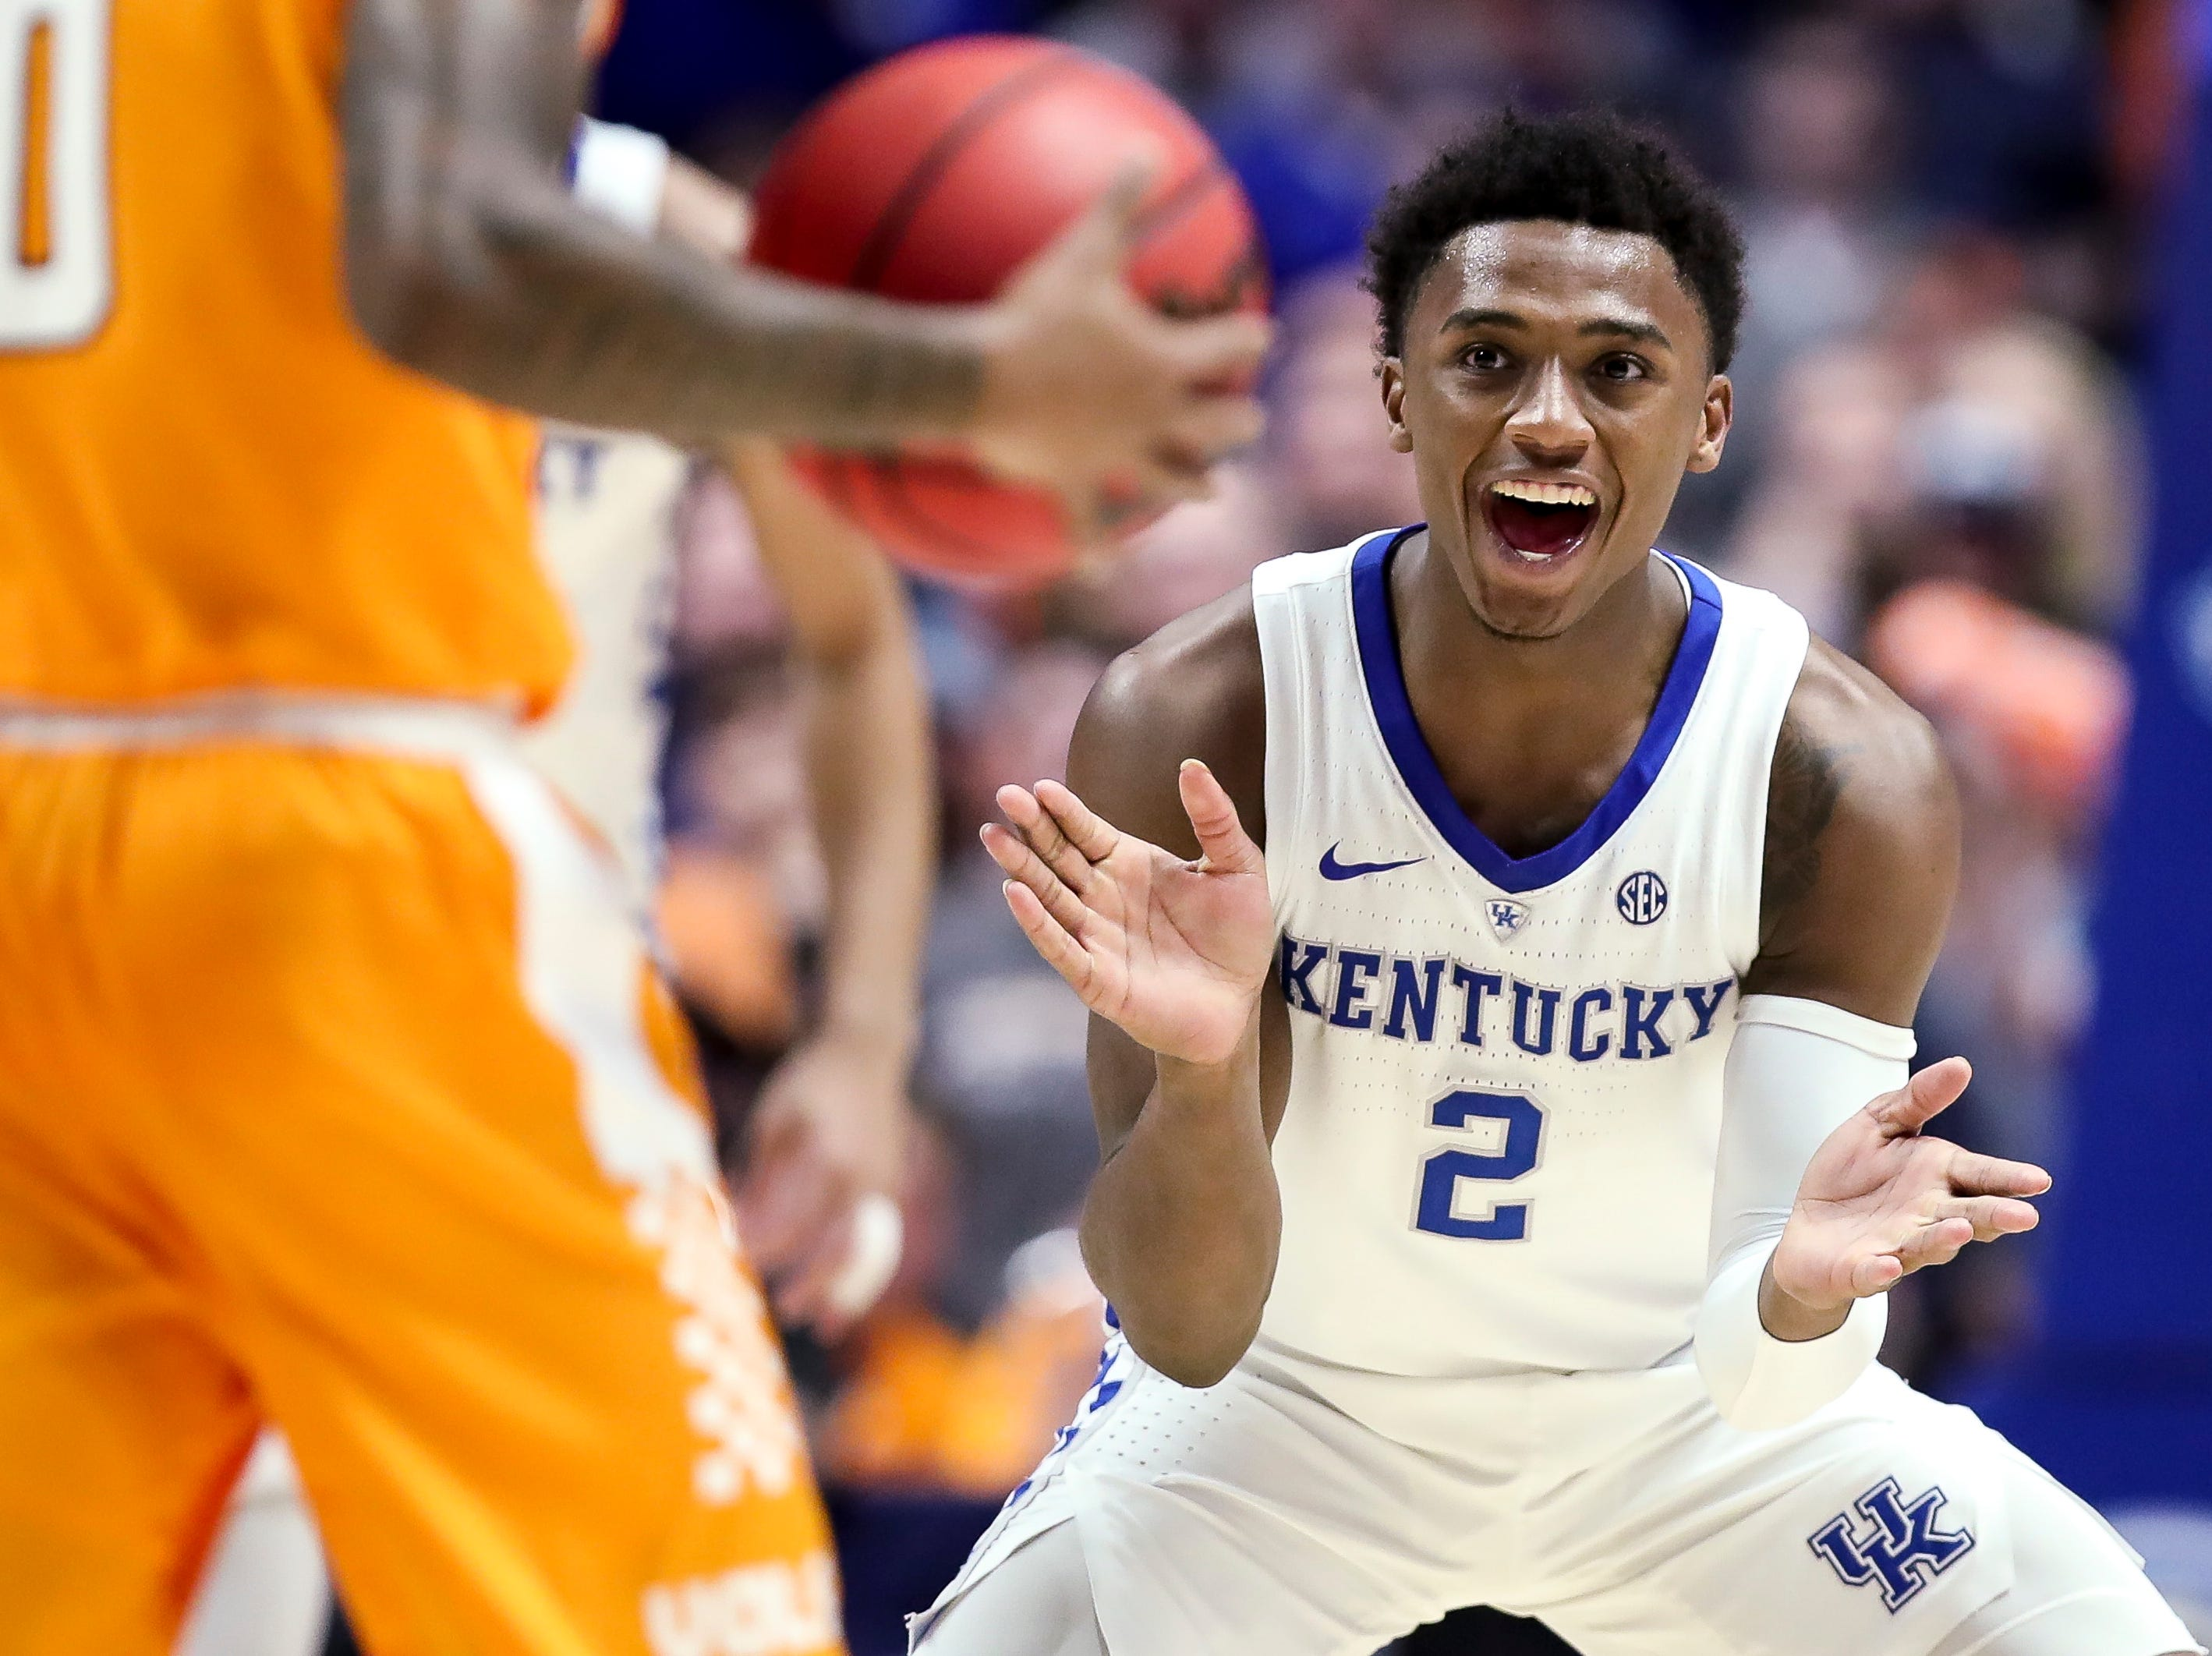 Kentucky guard Ashton Hagans (2) reacts during the second half of the SEC Men's Basketball Tournament semifinal game against Tennessee at Bridgestone Arena in Nashville, Tenn., Saturday, March 16, 2019.